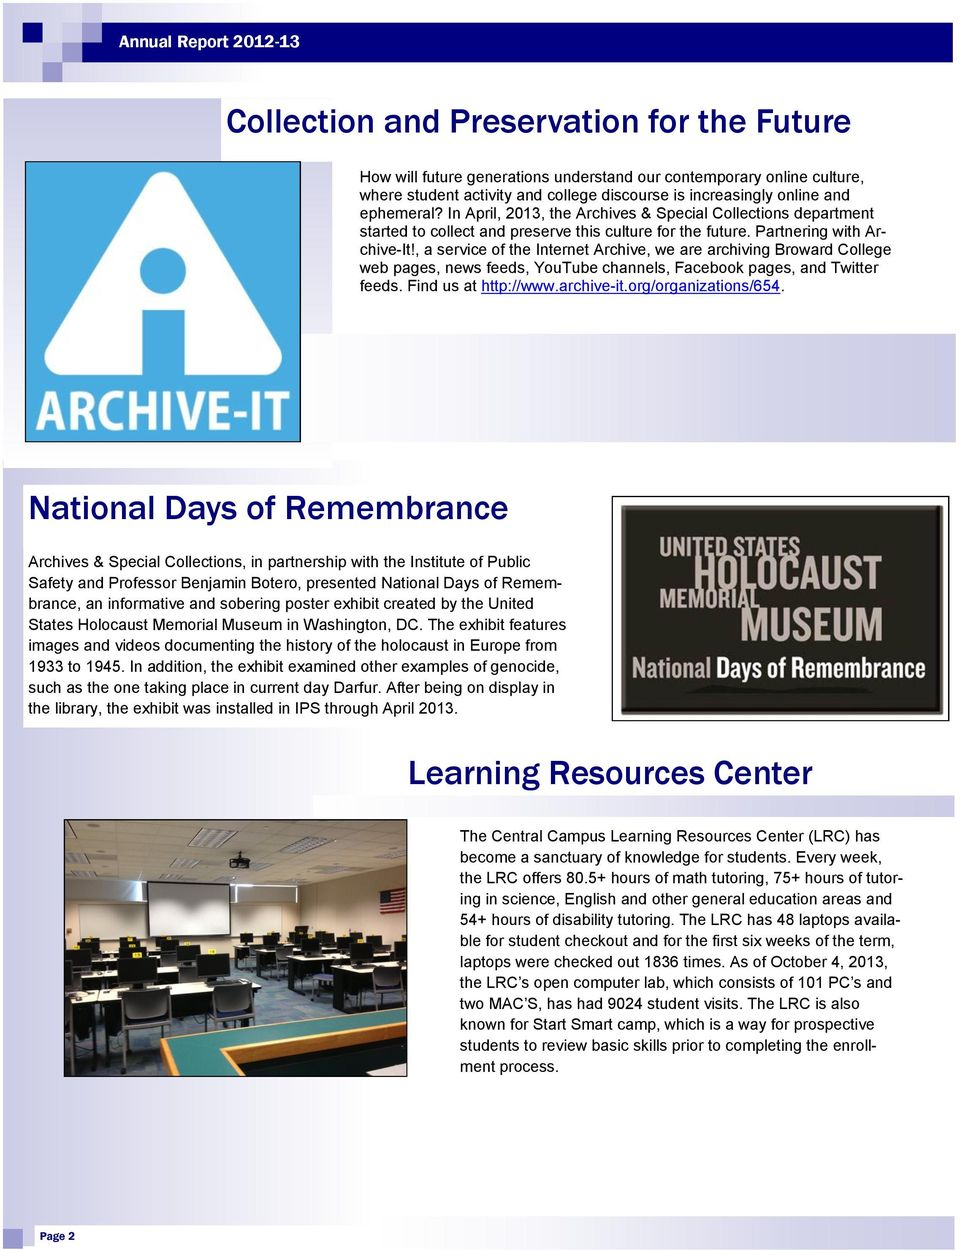 , a service of the Internet Archive, we are archiving Broward College web pages, news feeds, YouTube channels, Facebook pages, and Twitter feeds. Find us at http://www.archive-it.